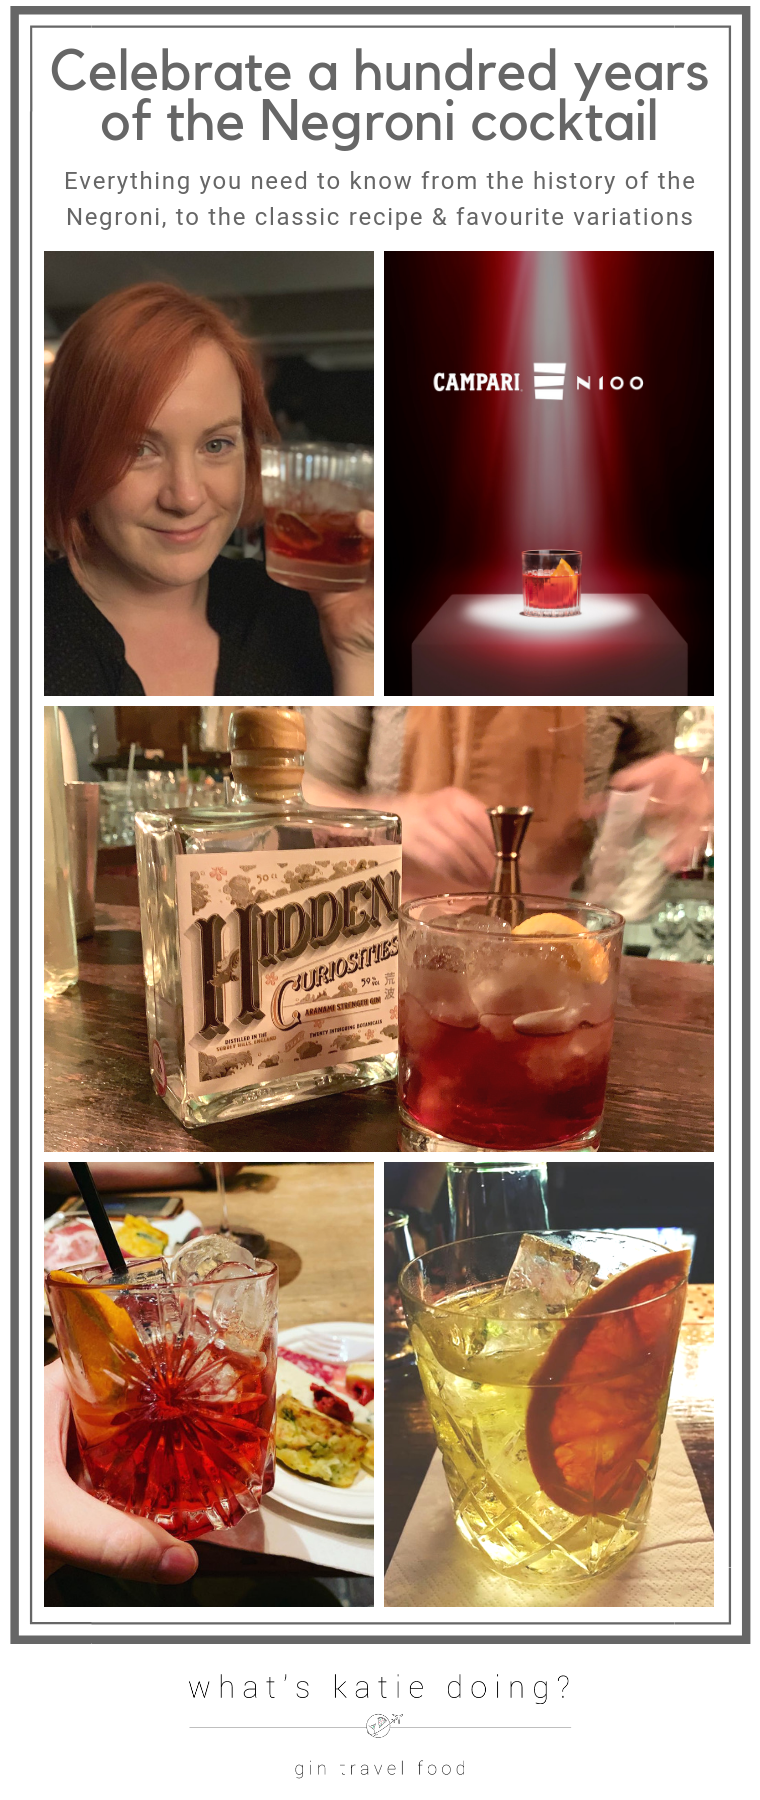 Celebrate a hundred years of the classic Negroni cocktail - read the history, get inspired and find your perfect recipe!